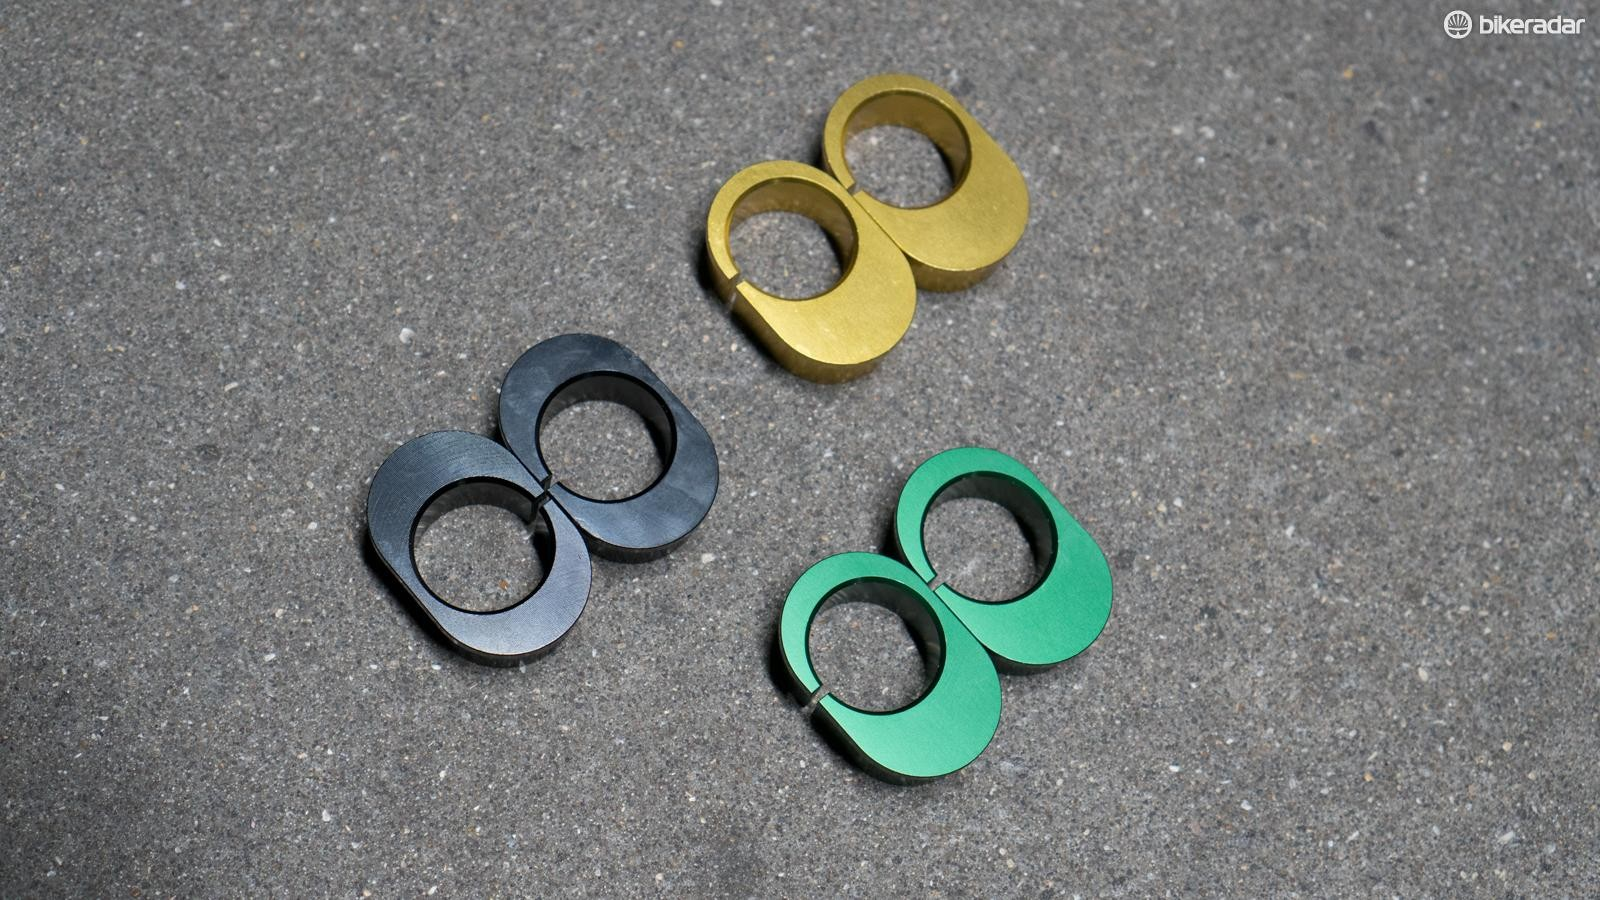 The kit includes two machined crowns, a steerer tube and four sets of inserts